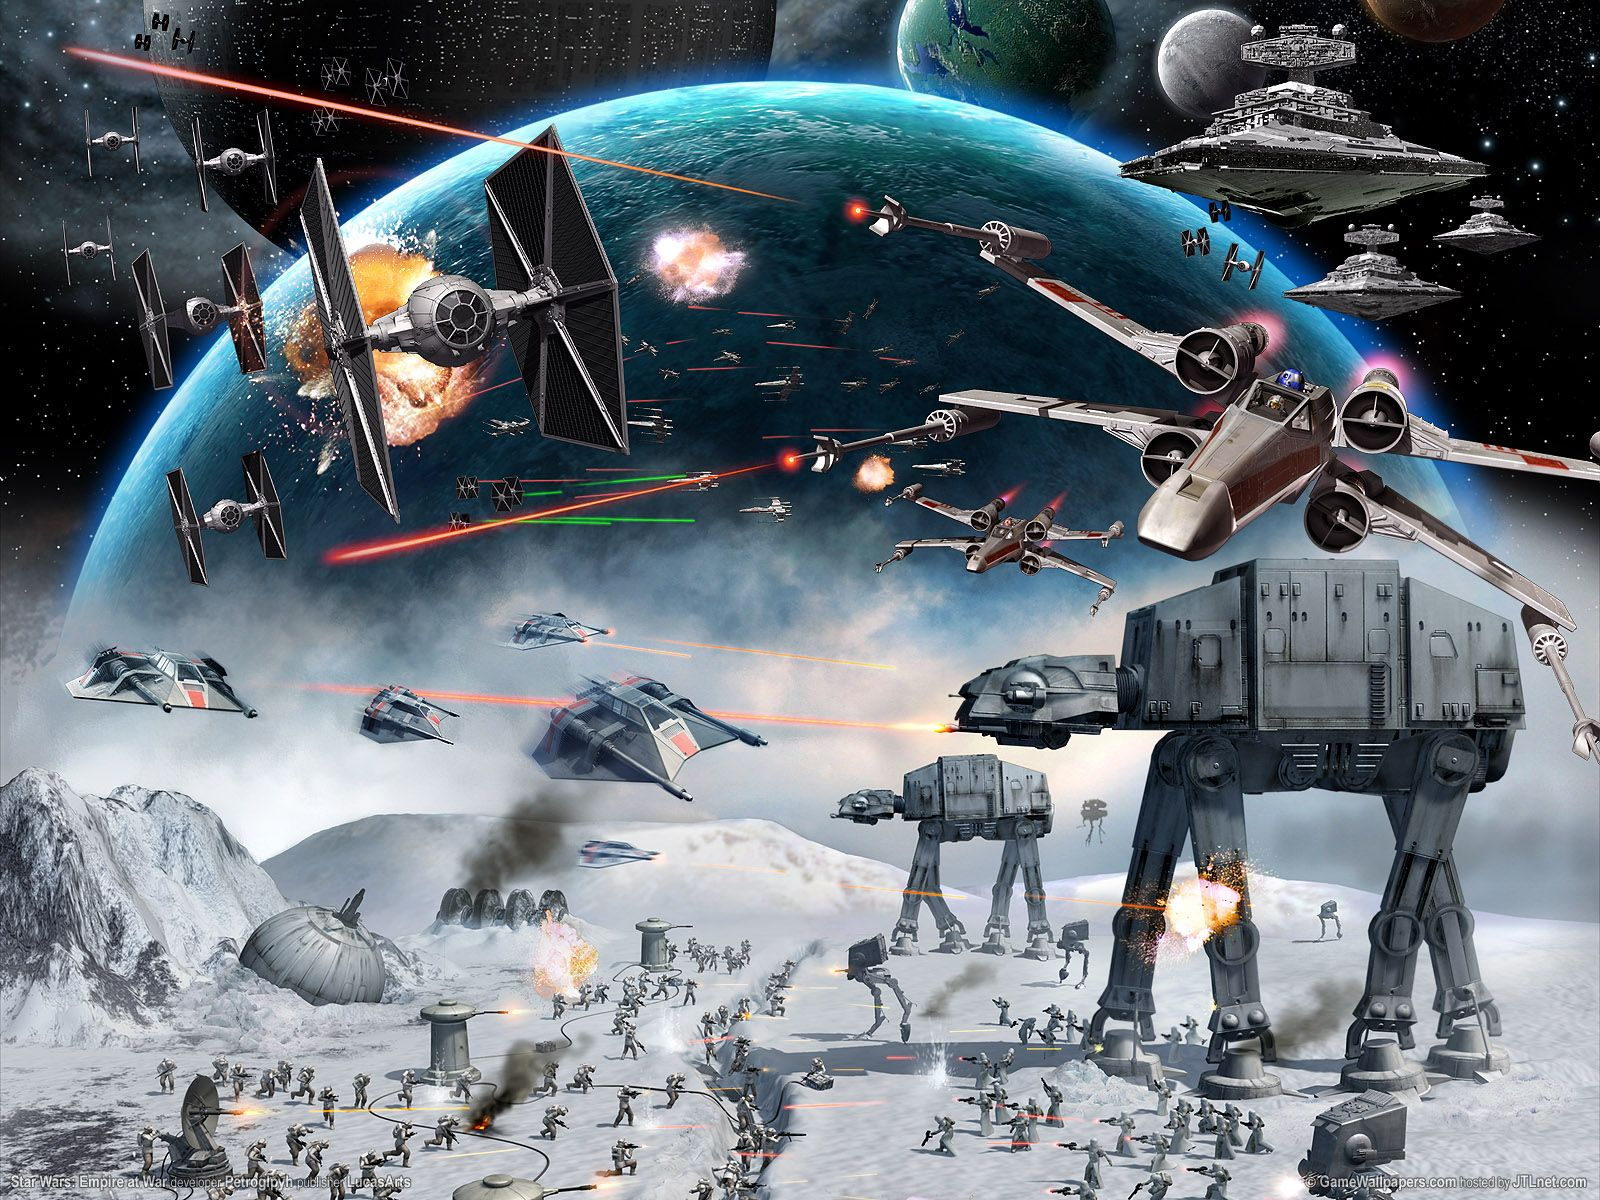 Star Wars Empire At War Wallpapers Top Free Star Wars Empire At War Backgrounds Wallpaperaccess